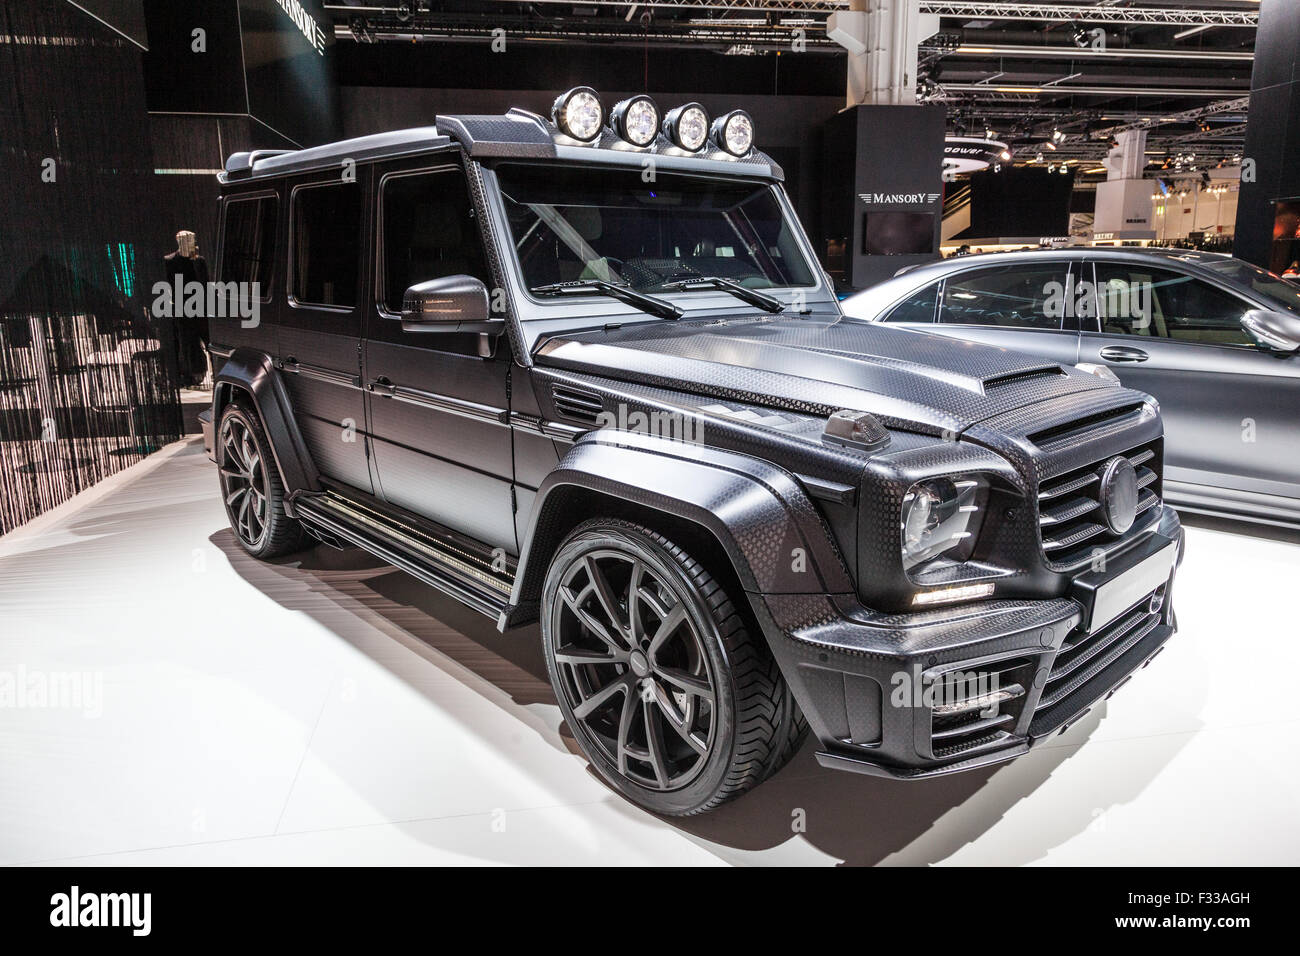 mansory mercedes benz g class at the iaa 2015 stock photo. Black Bedroom Furniture Sets. Home Design Ideas